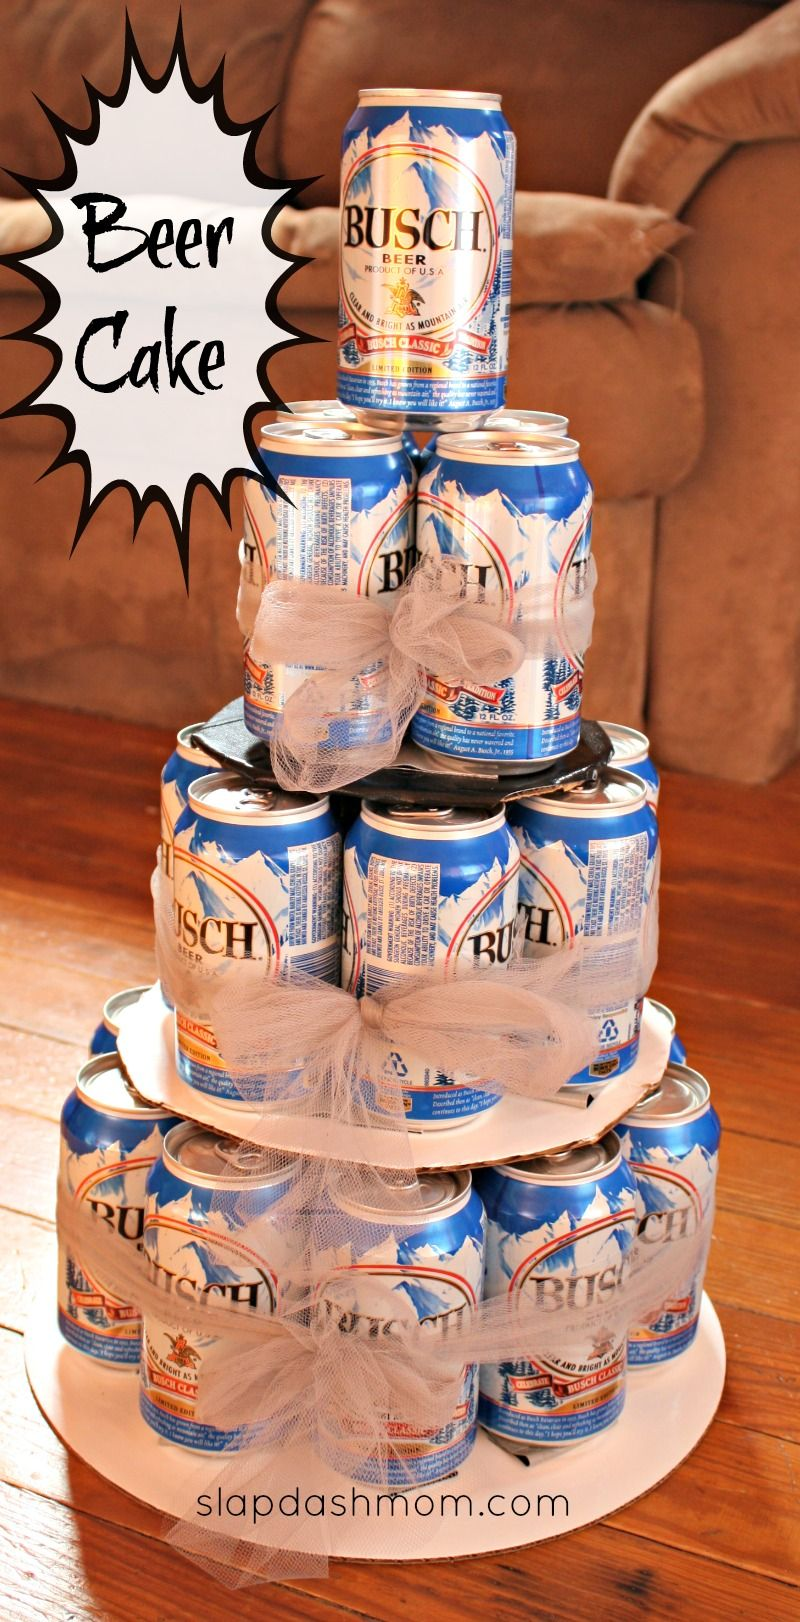 Beer Cake Design Ideas : DIY Beer Tower Cake #hoosier Beer tower